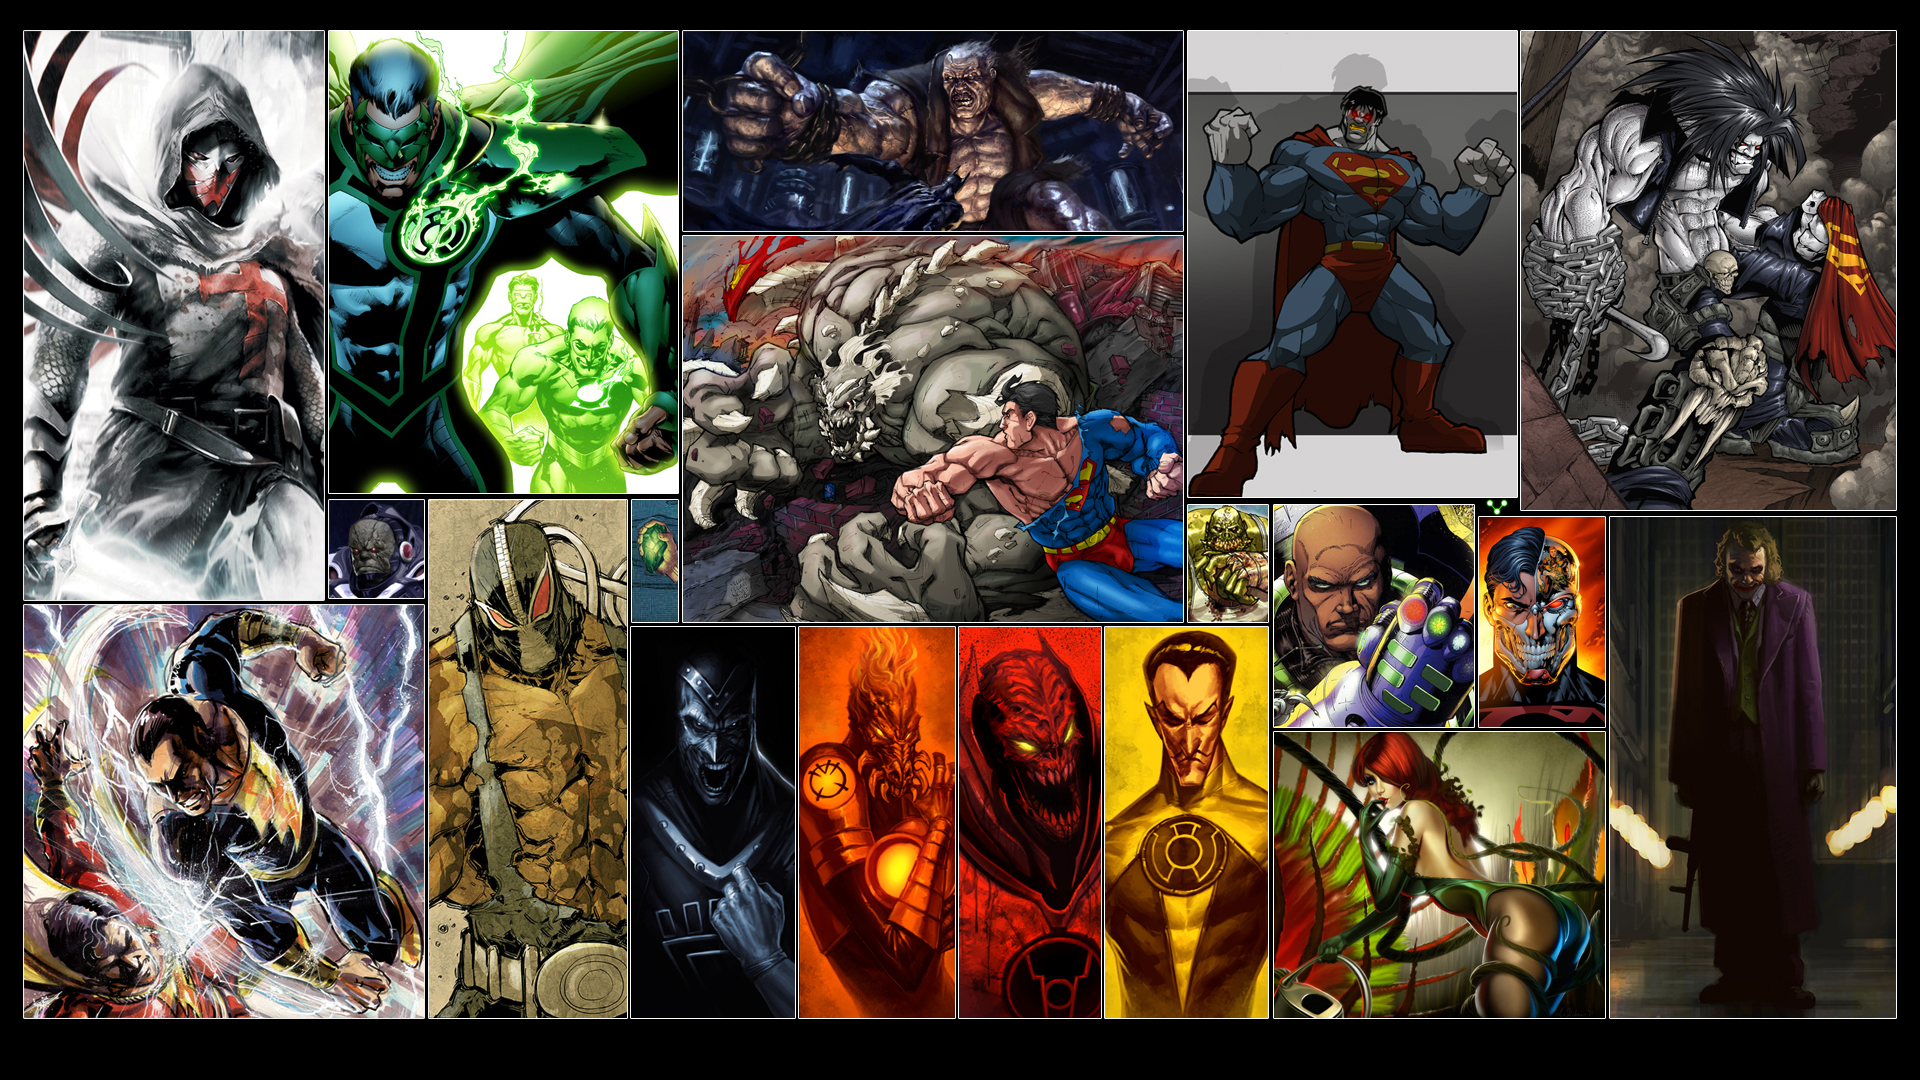 Dc comics super villains by gt orphan on deviantart for Kid chat rooms 12 14